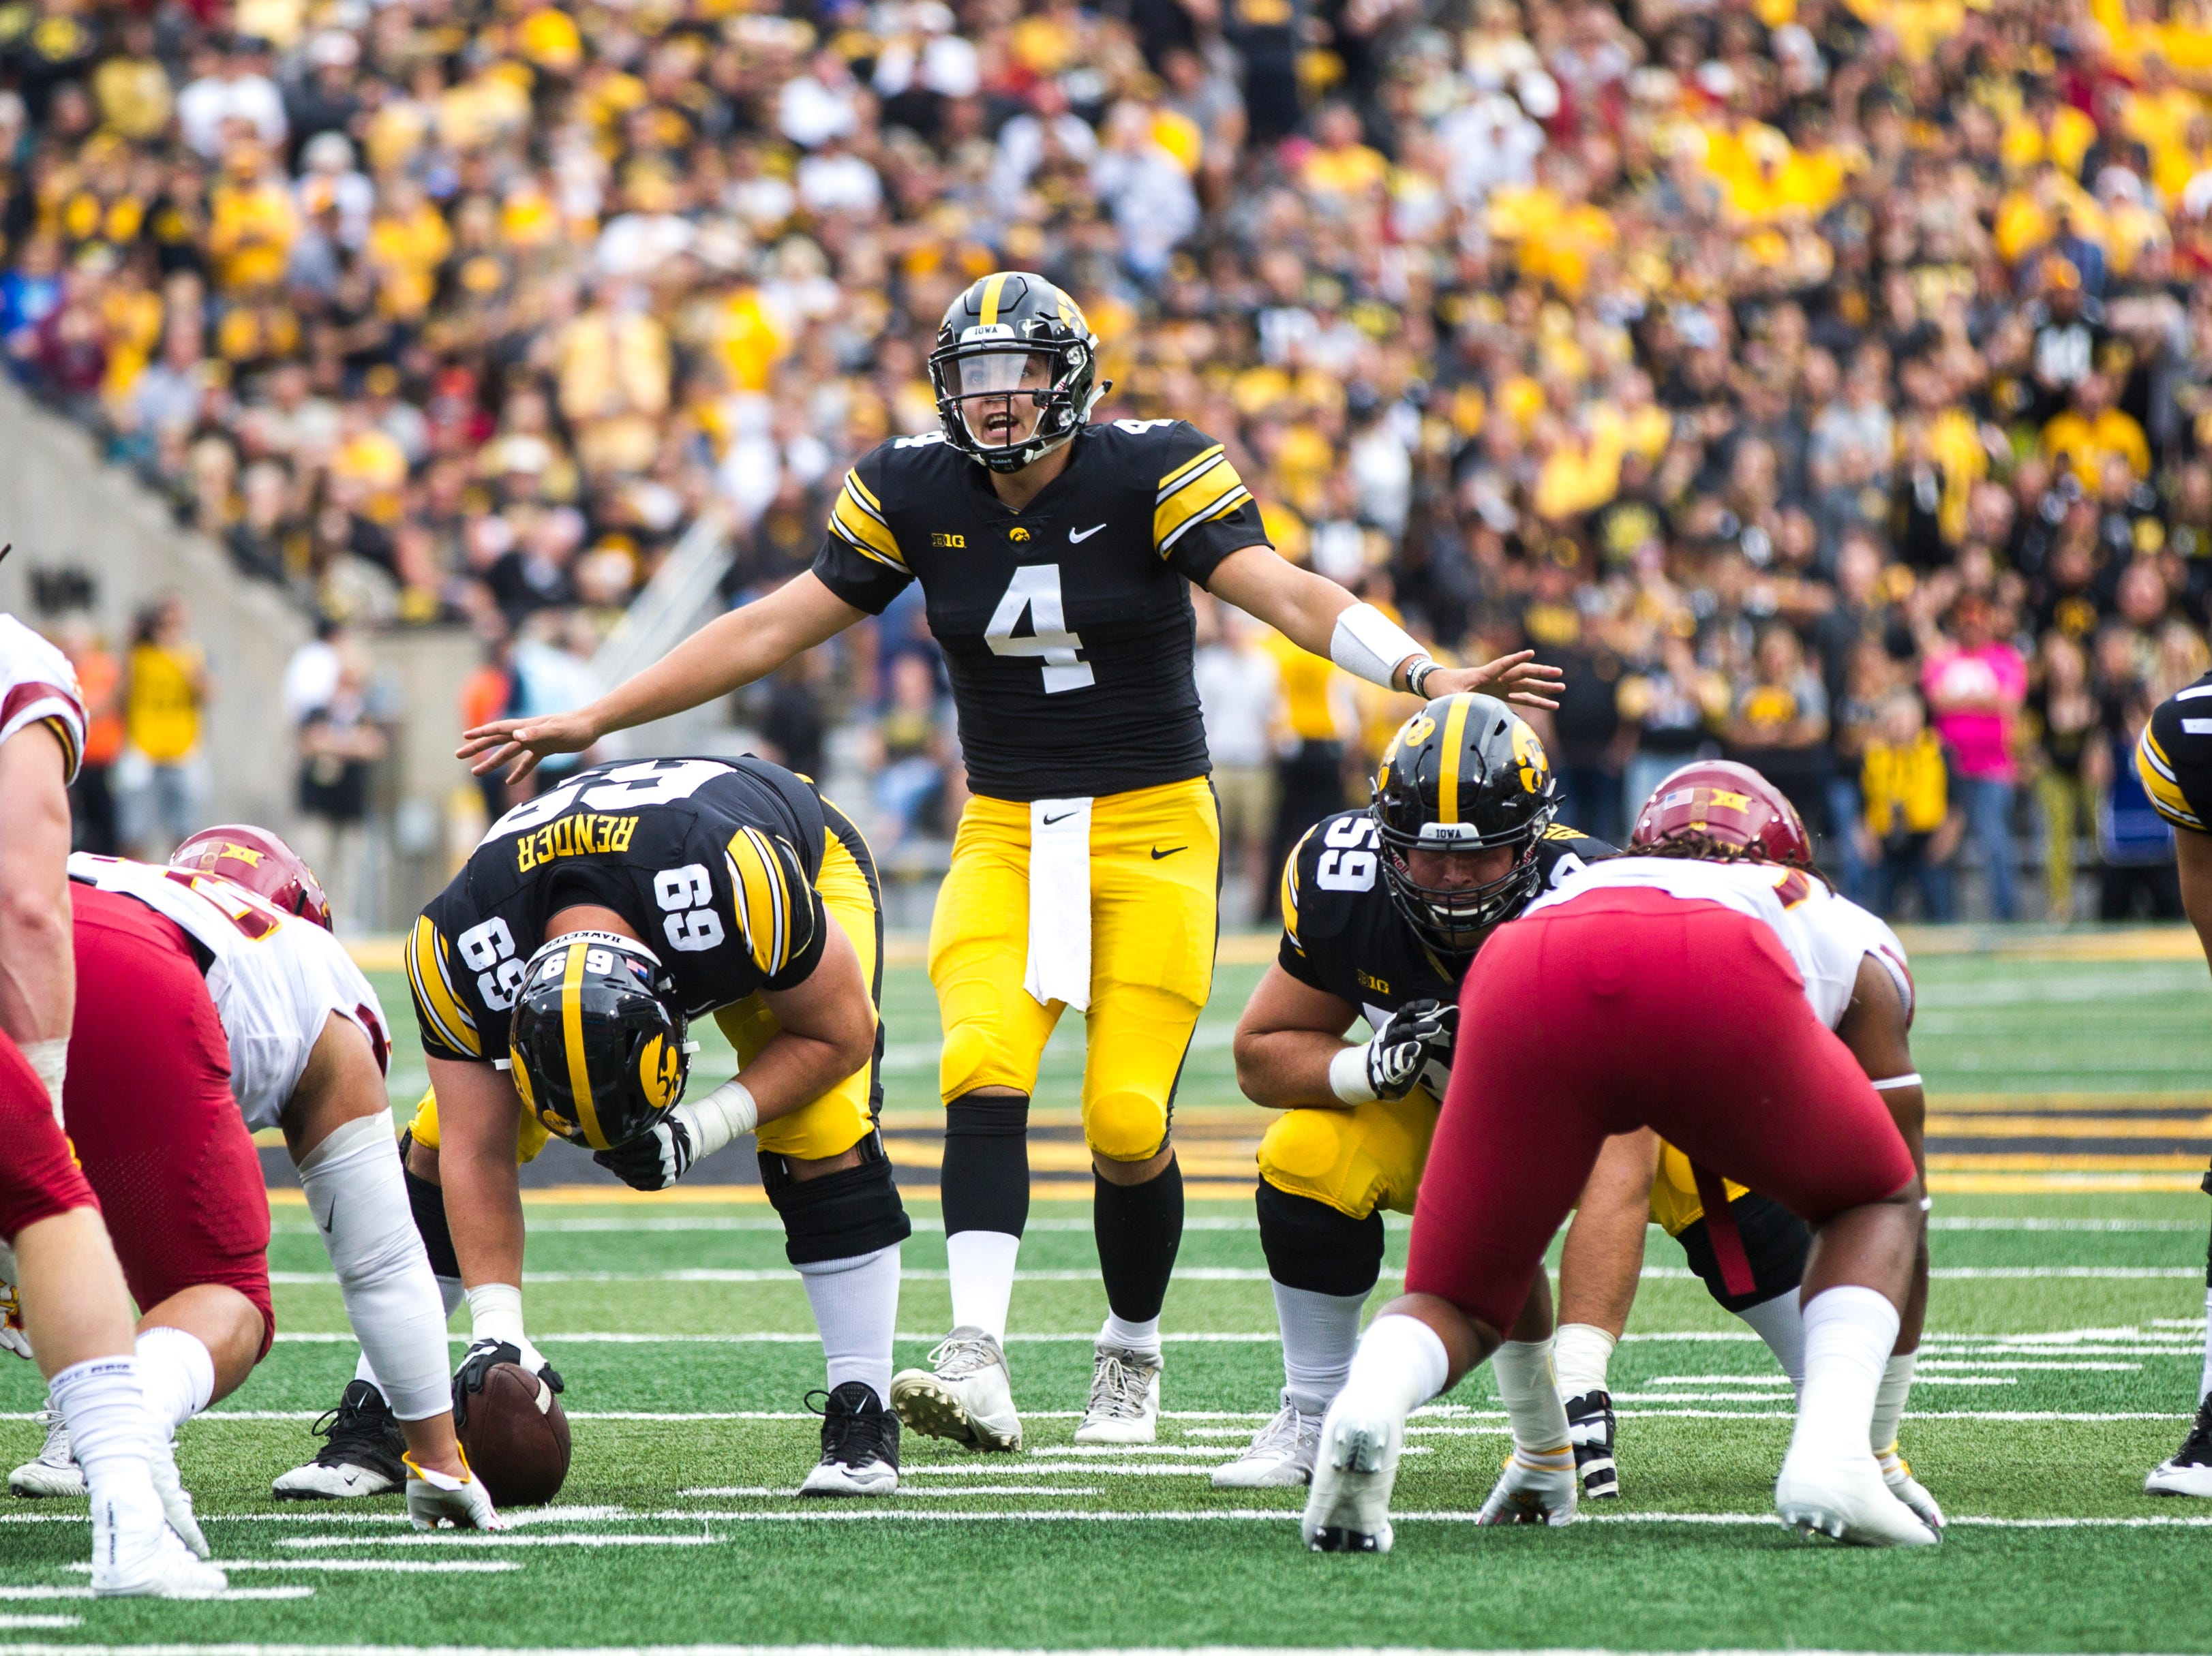 Iowa quarterback Nate Stanley (4) calls to teammates at the line during the Cy-Hawk NCAA football game on Saturday, Sept. 8, 2018, at Kinnick Stadium in Iowa City.